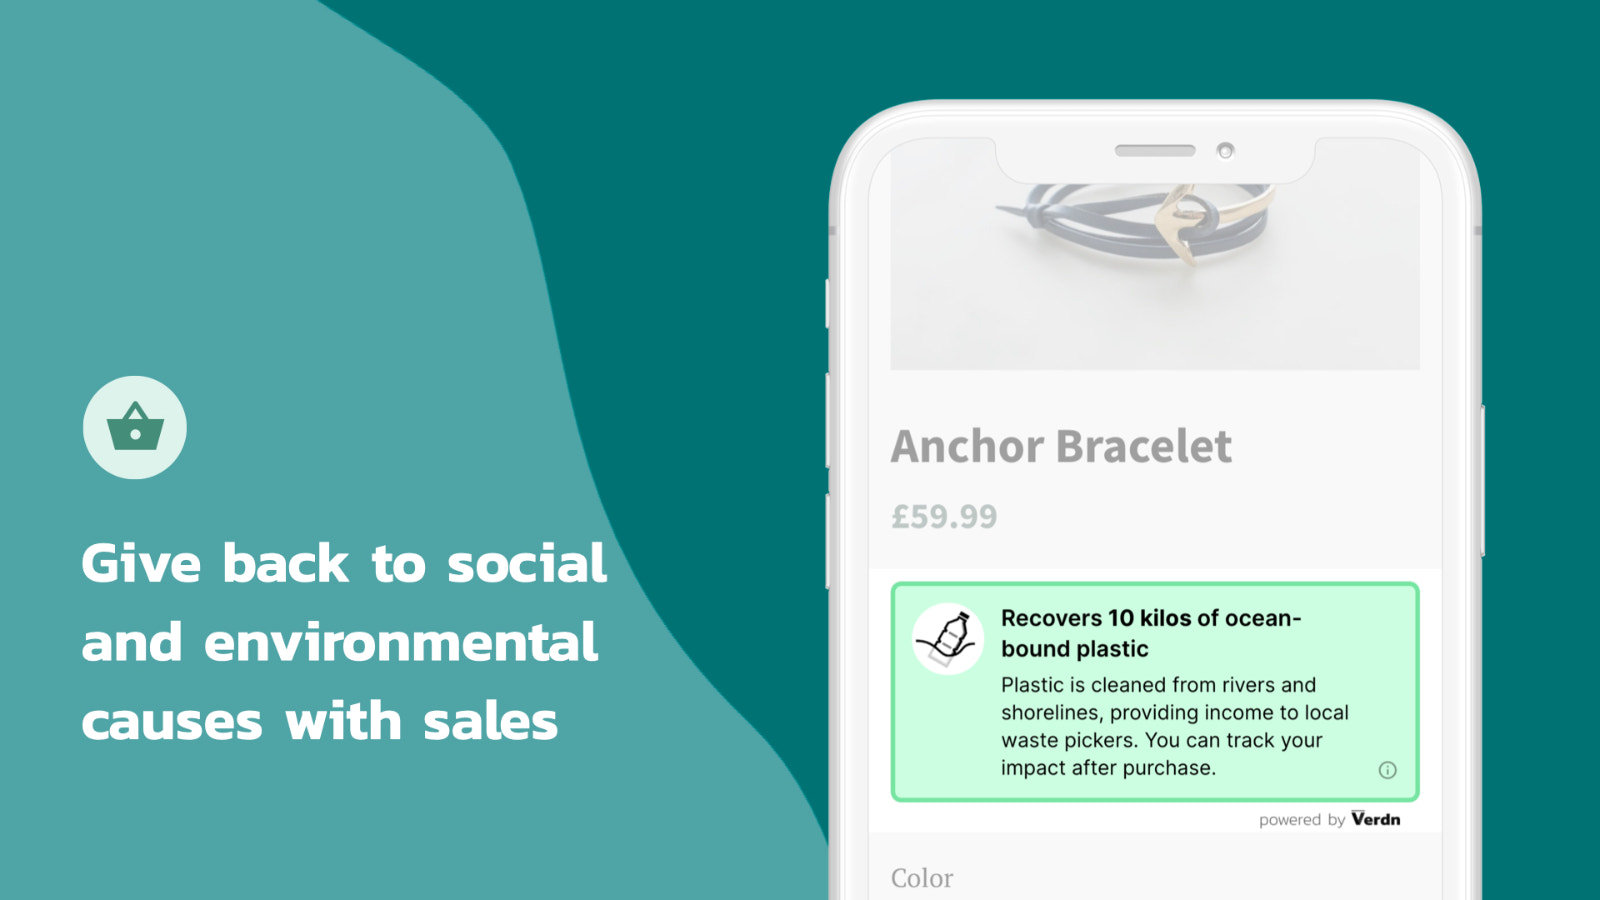 Give back to social and environmental causes with sales